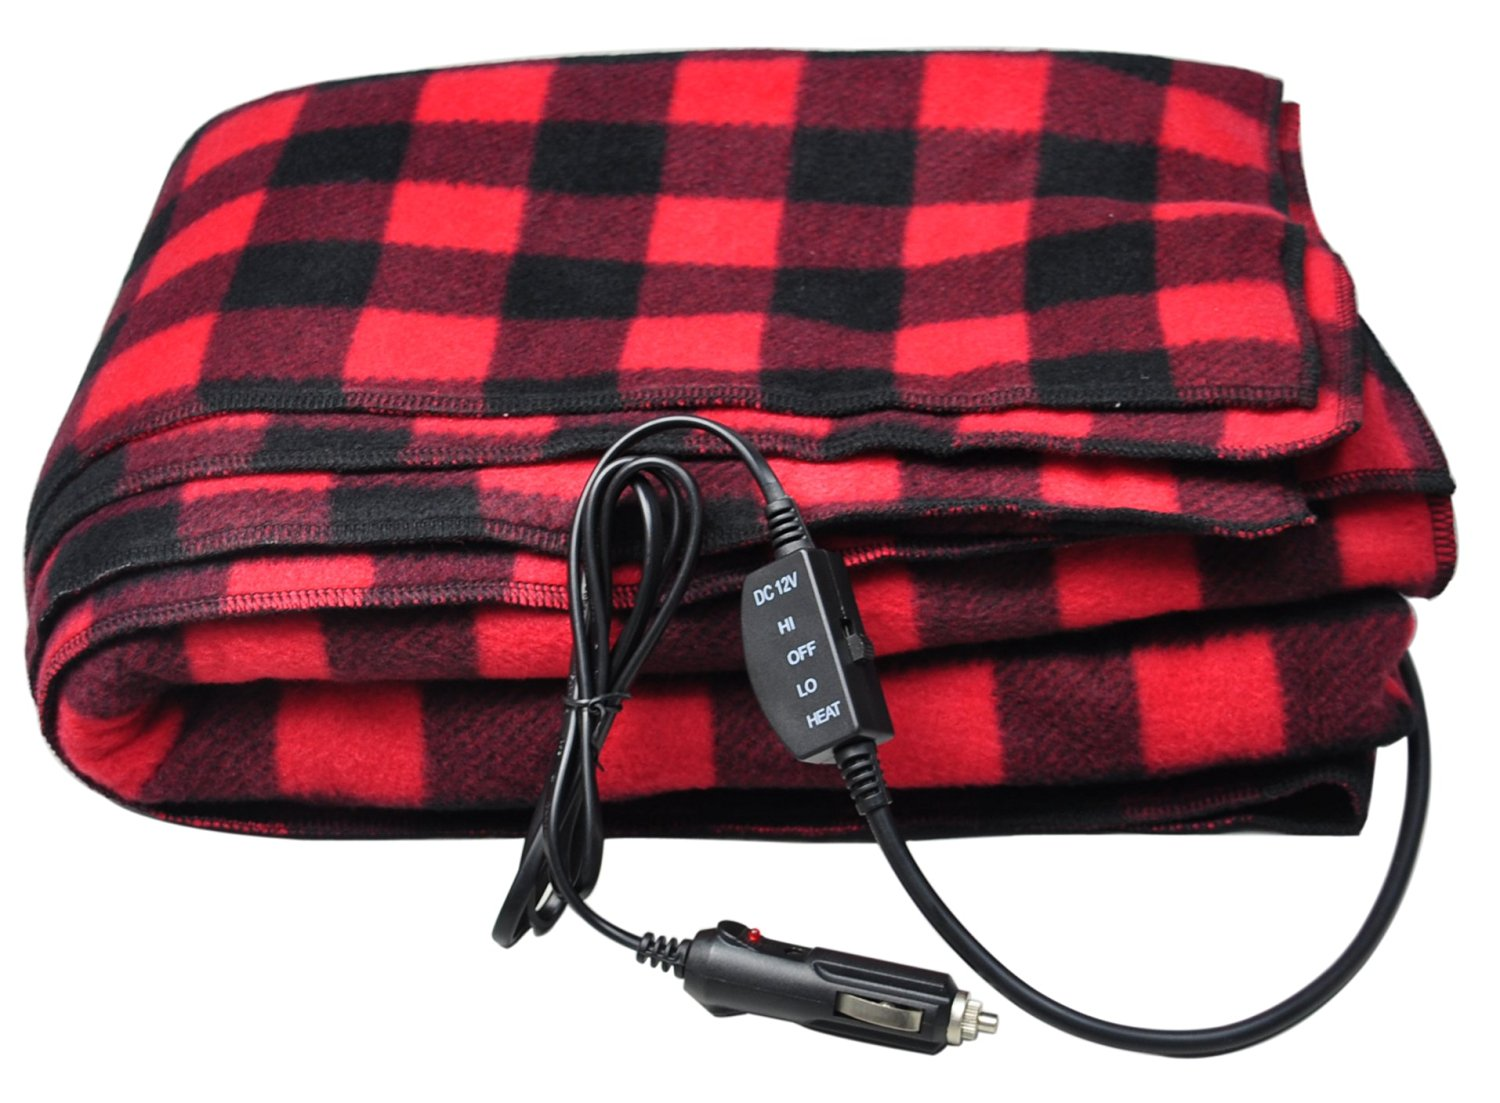 Car Blanket: 12-Volt Red Plaid Heated Electric Blanket For Car, Truck